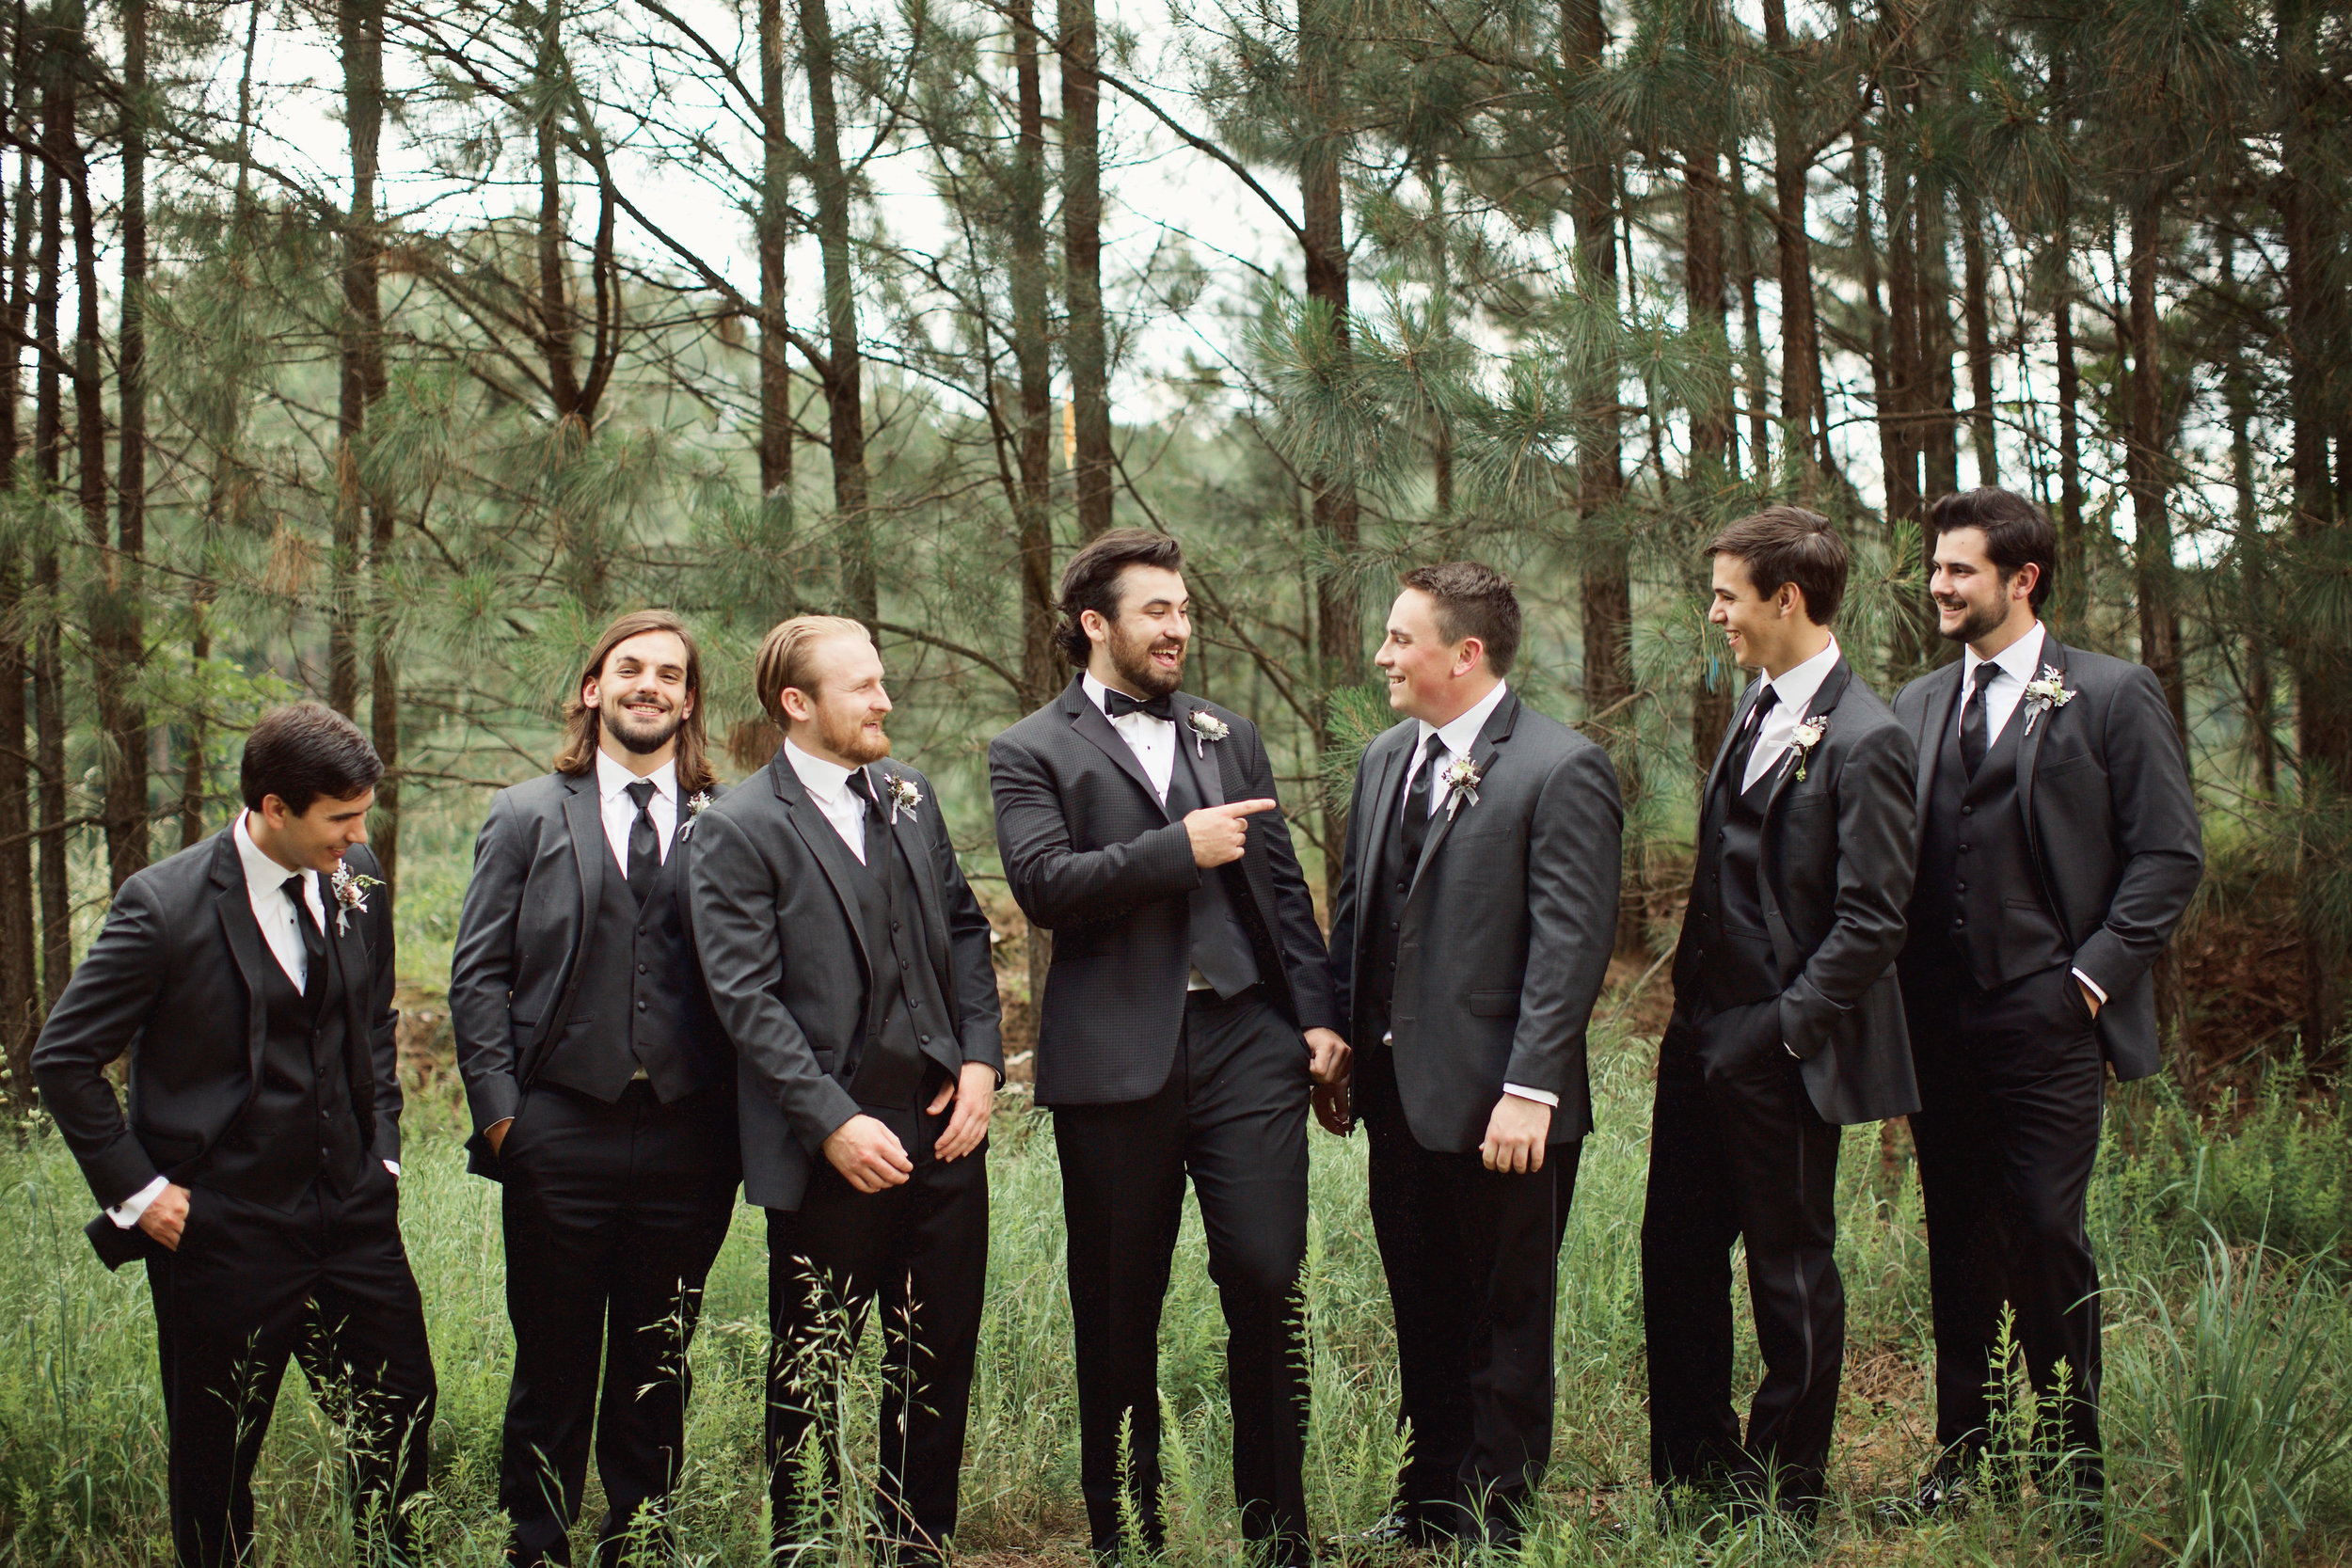 Rachel Slauer Events River Club May Wedding Planning Groomsmen 04.jpg